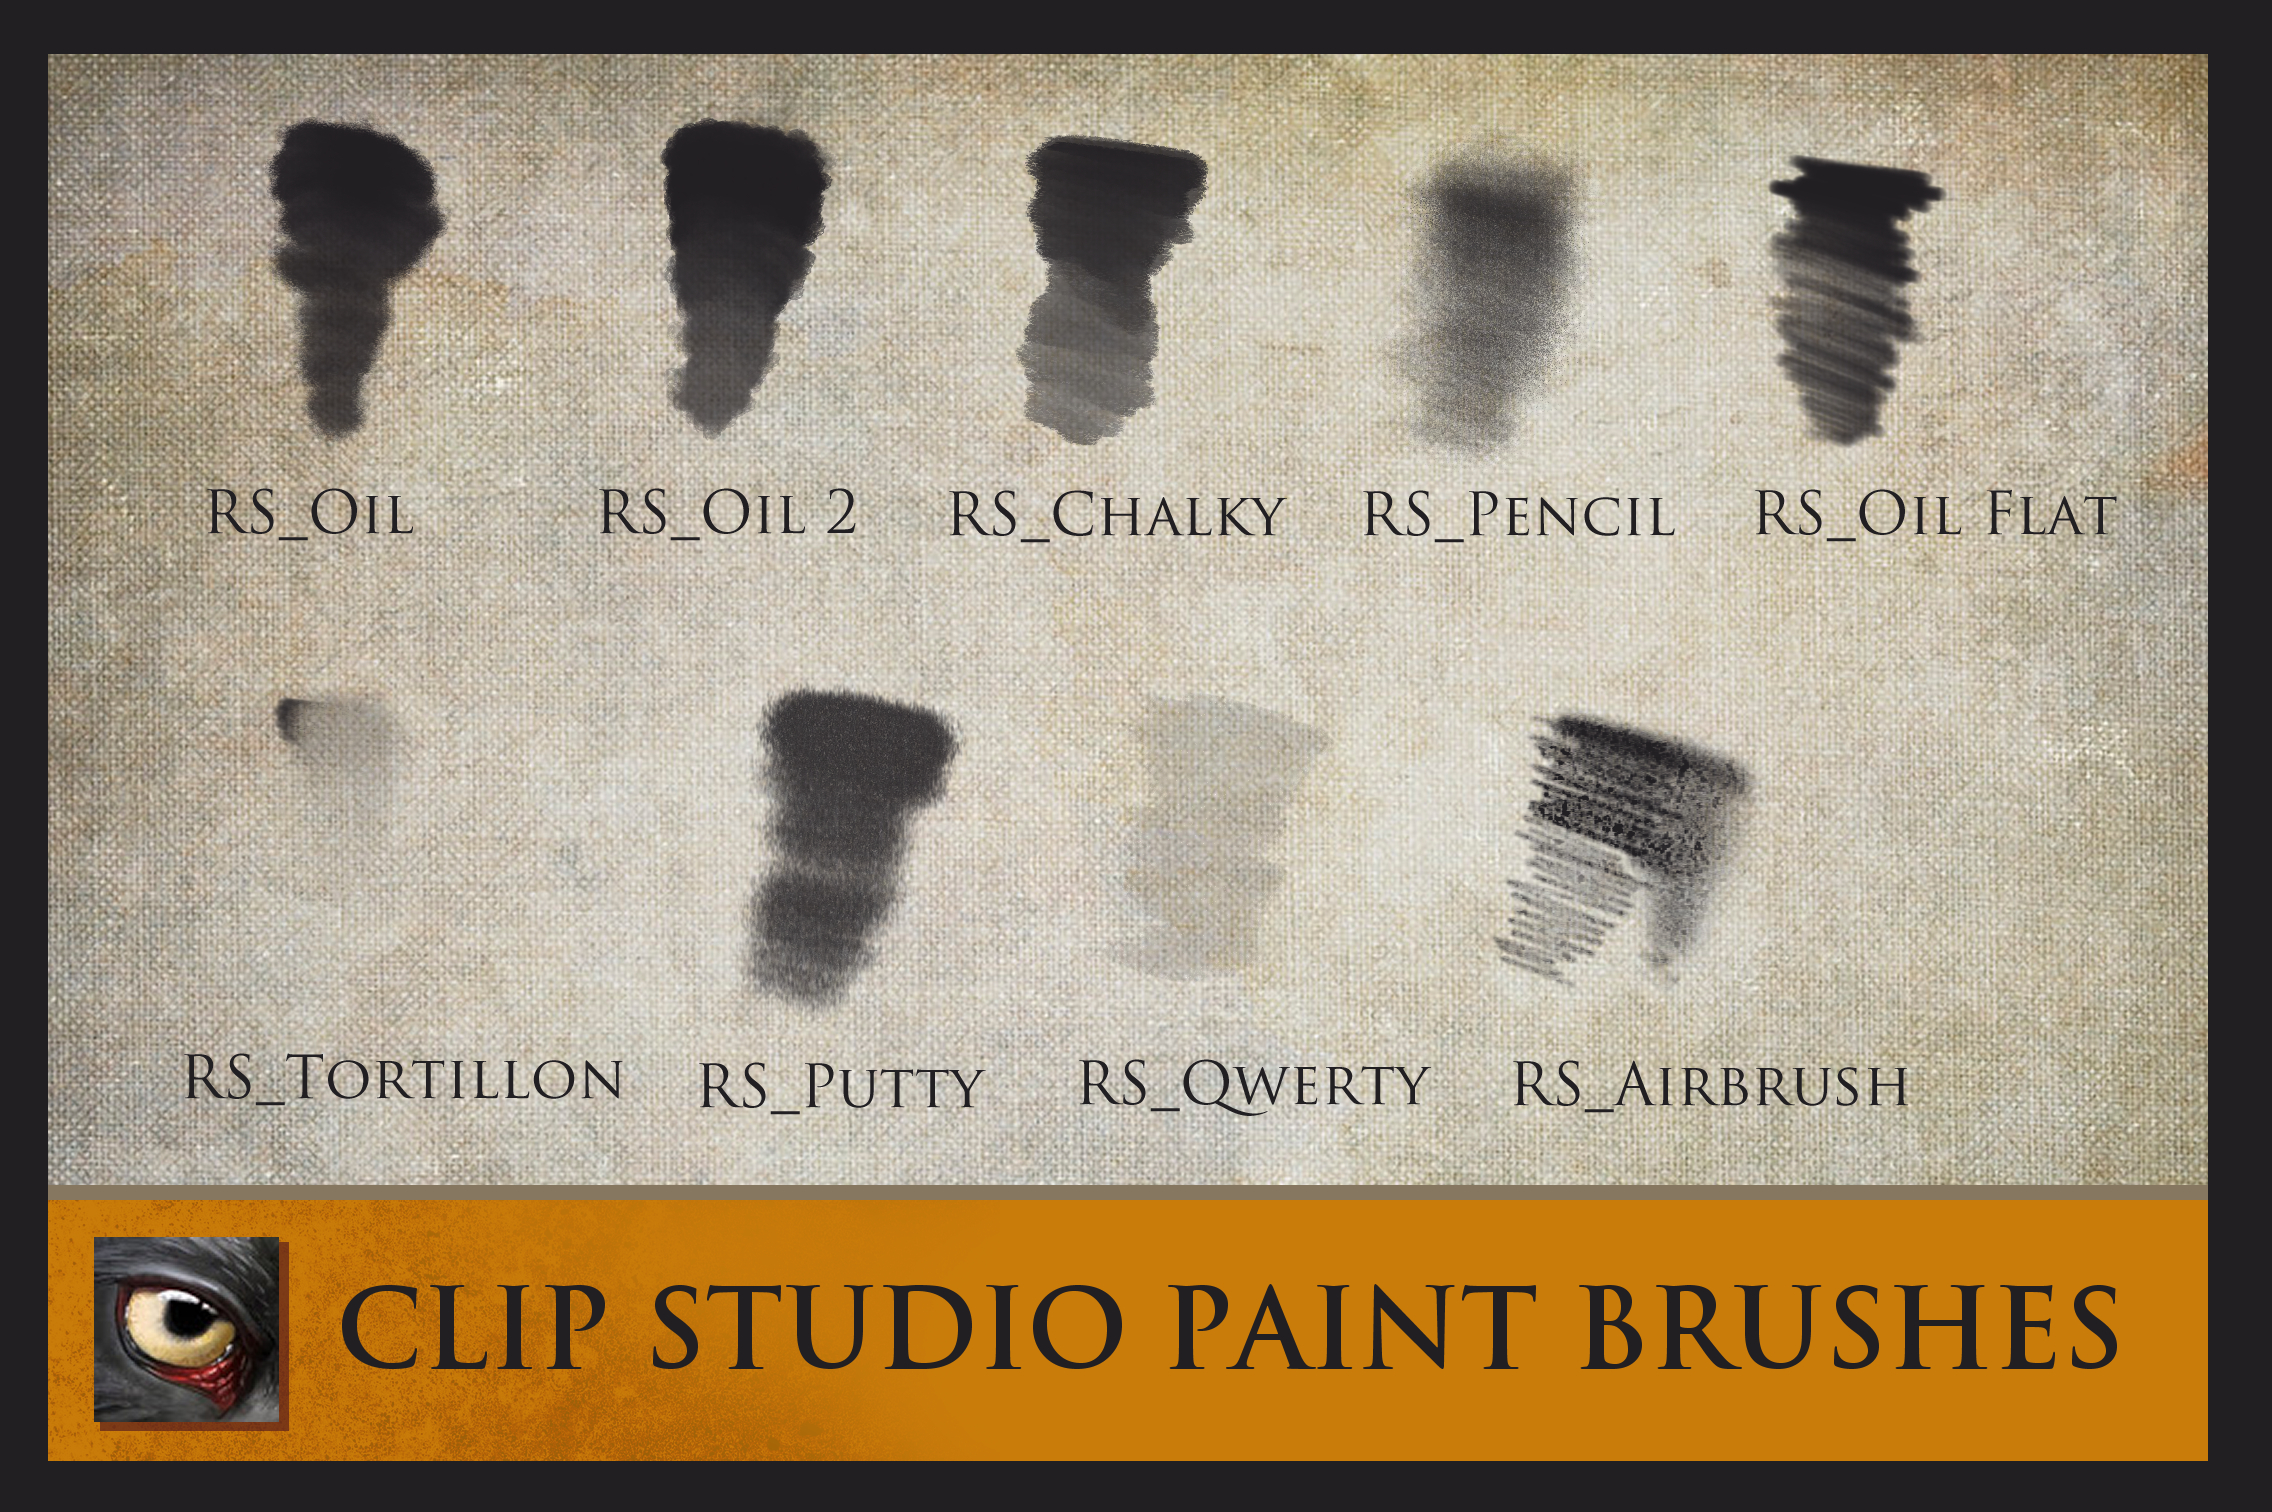 Clip Studio Paint Brushes - Textured Oils